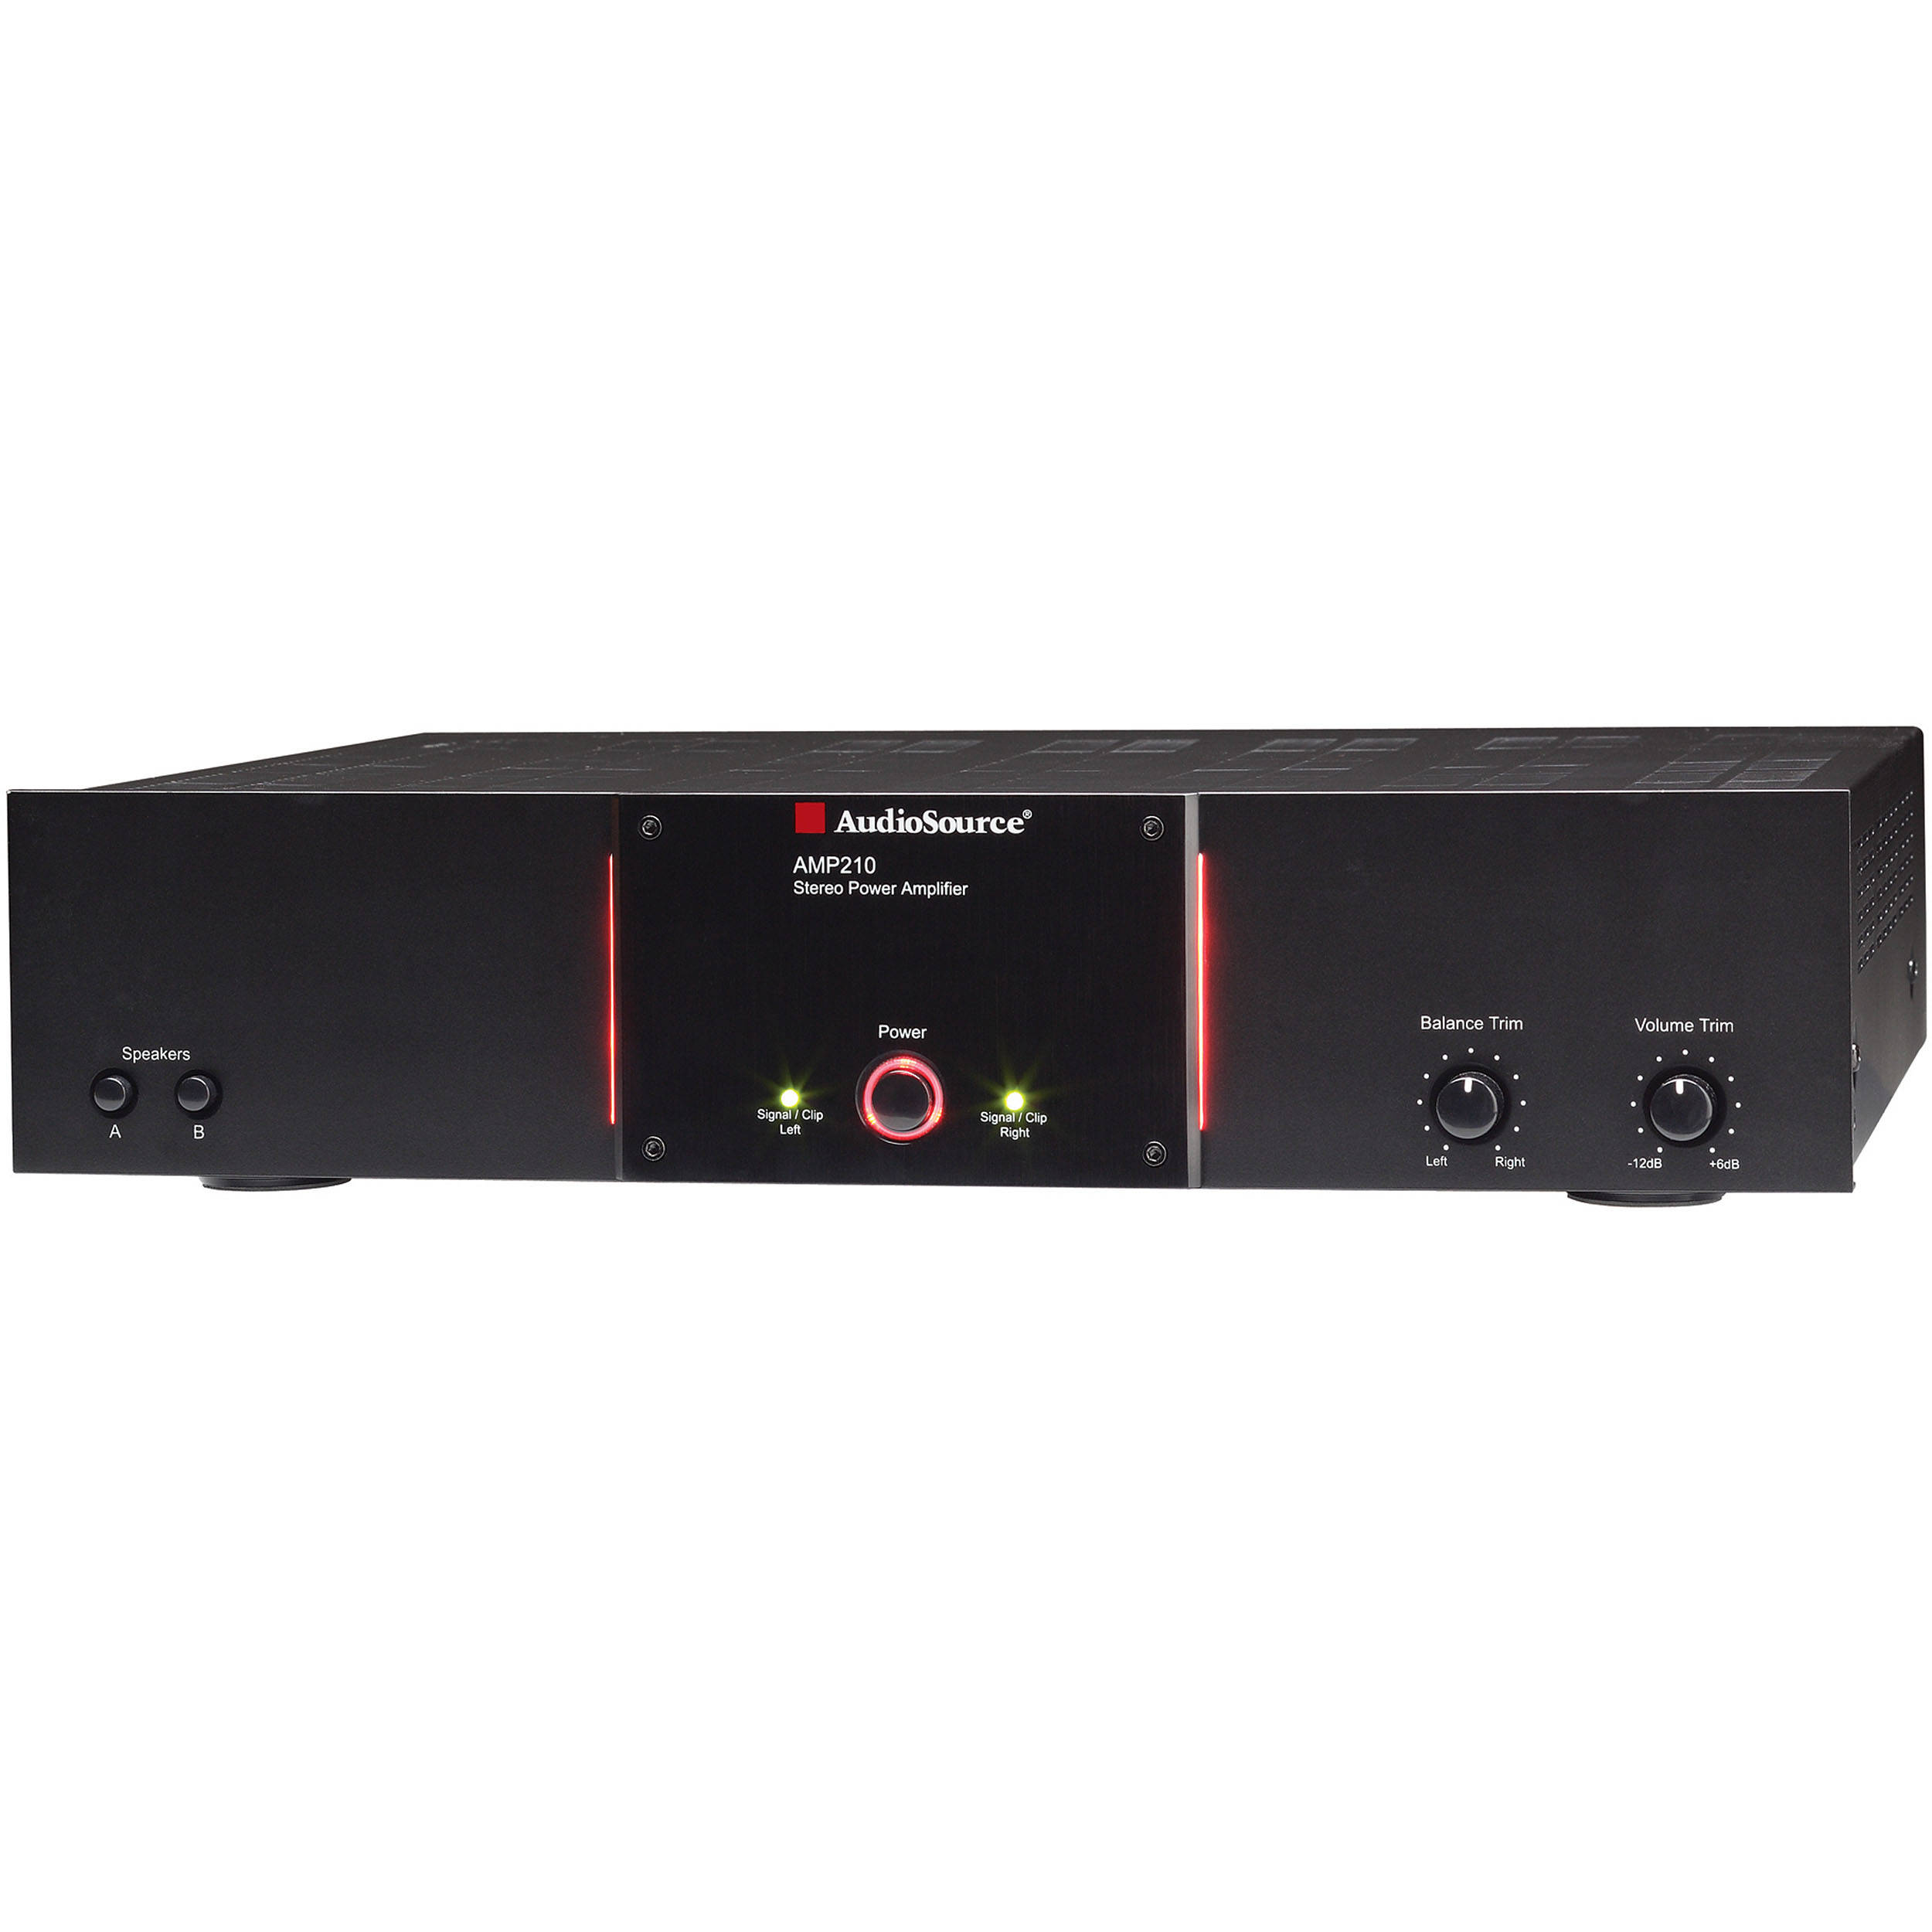 audiosource amp210 power amplifier amp 210 b h photo video rh bhphotovideo com Audio Source Amp 7 AudioSource AMP 310 Review